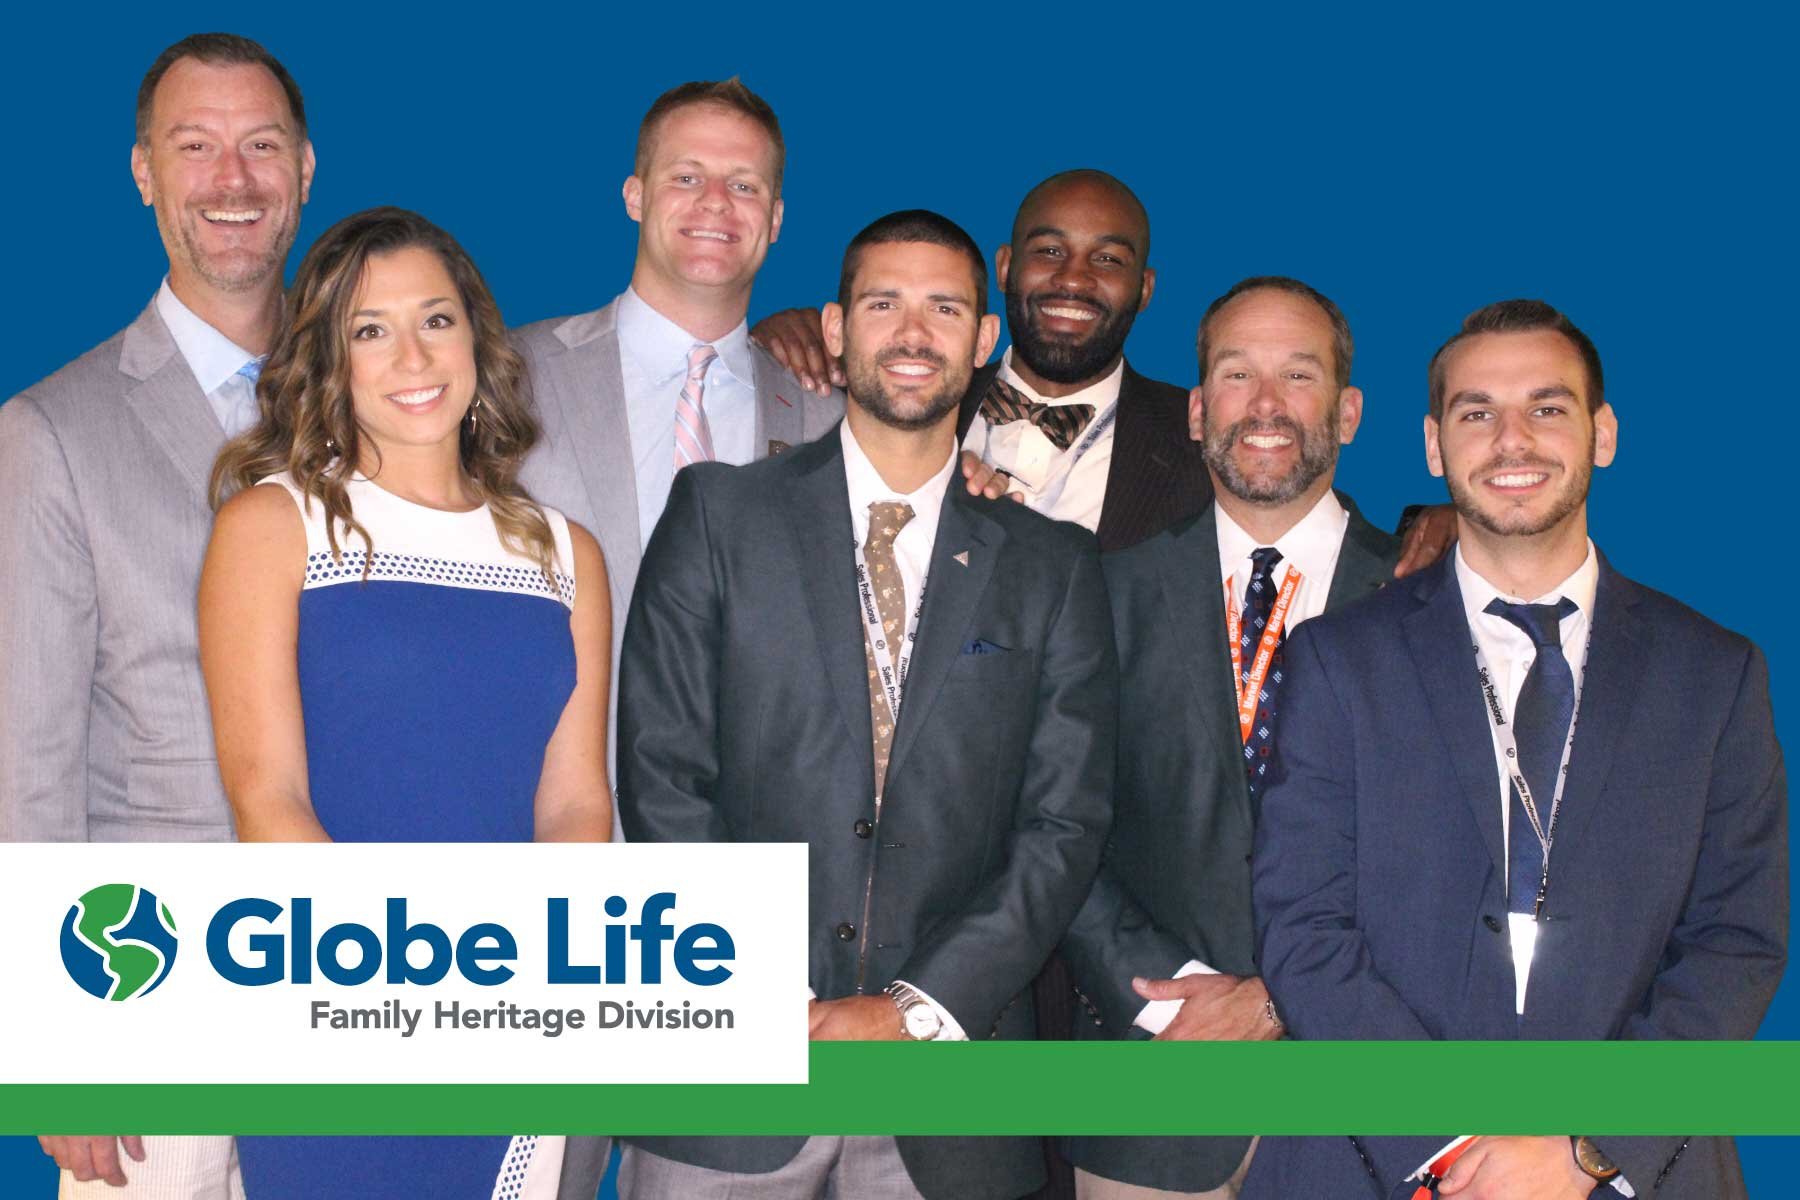 Globe Life And Accident Insurance >> Agent Careers | Family Heritage Division | Globe Life Careers | Globe Life Careers